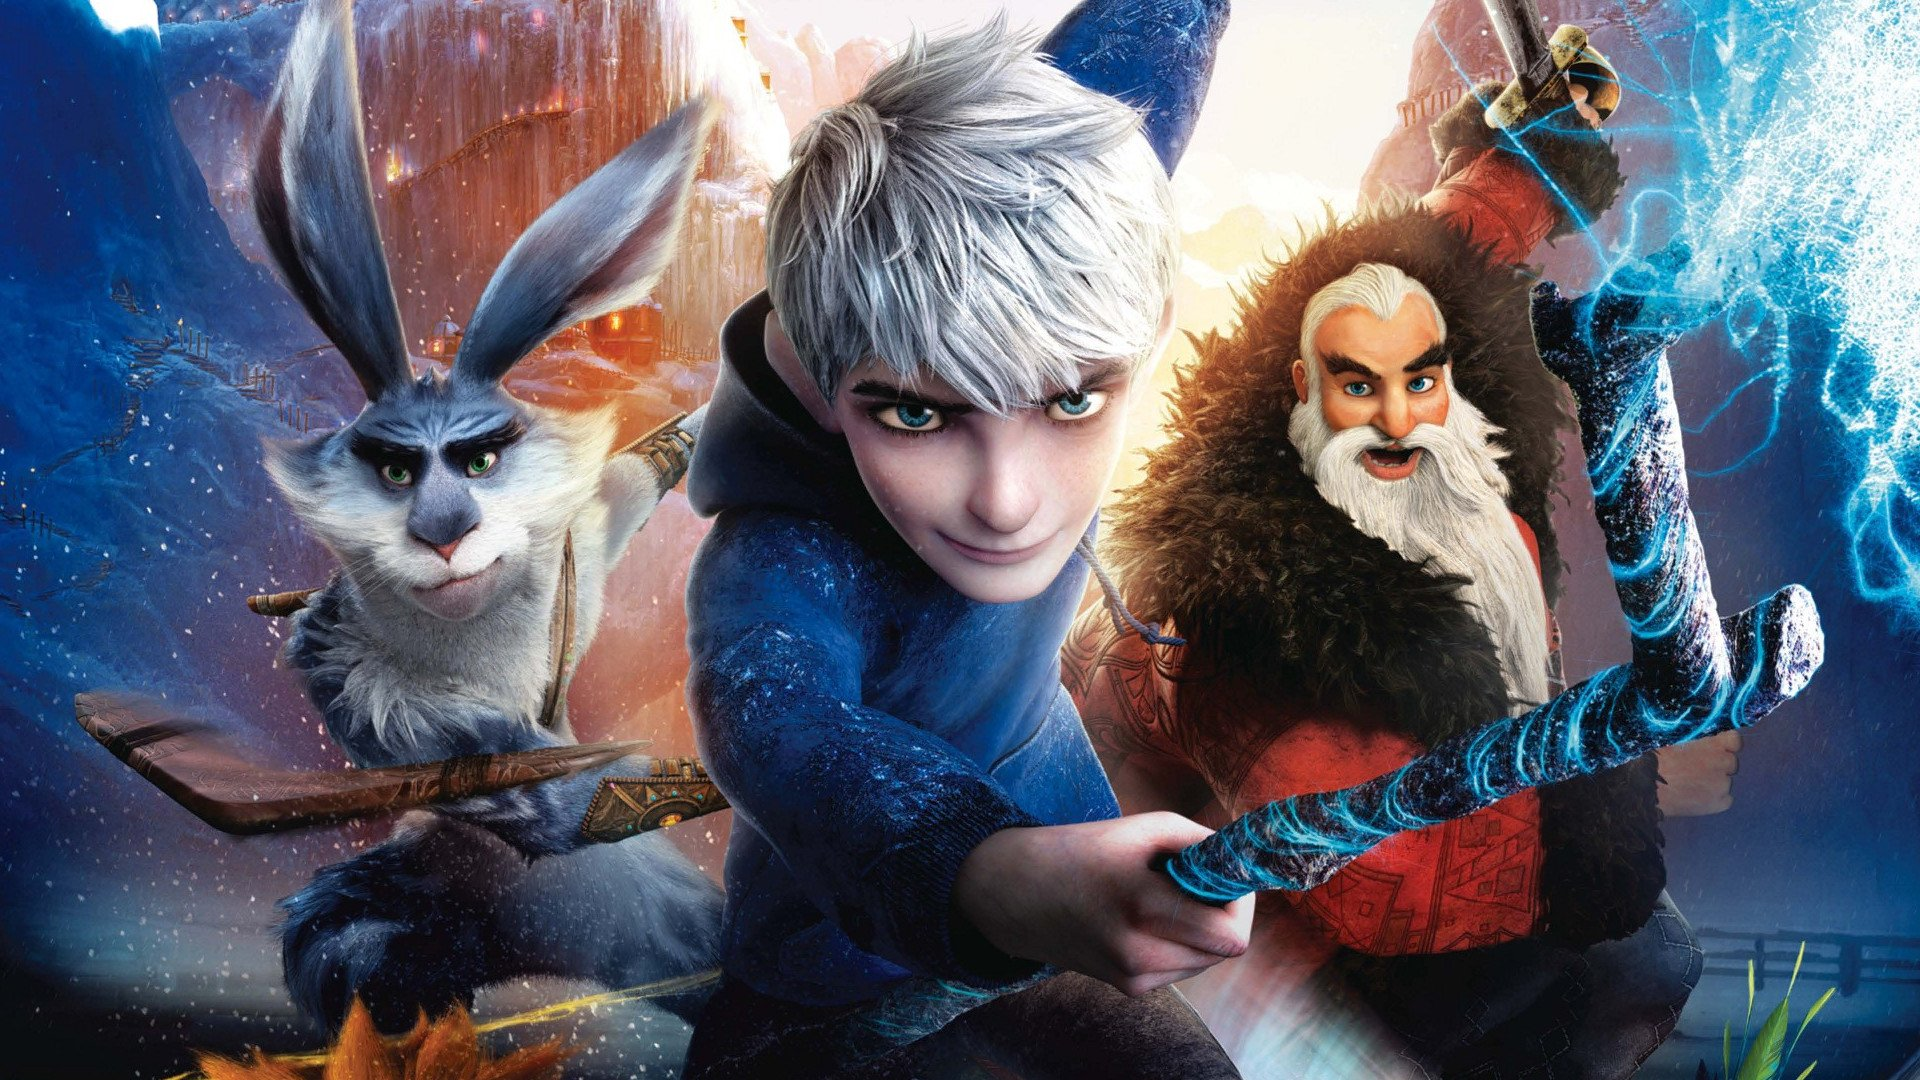 Rise Of The Guardians Hd Wallpaper Background Image 1920x1080